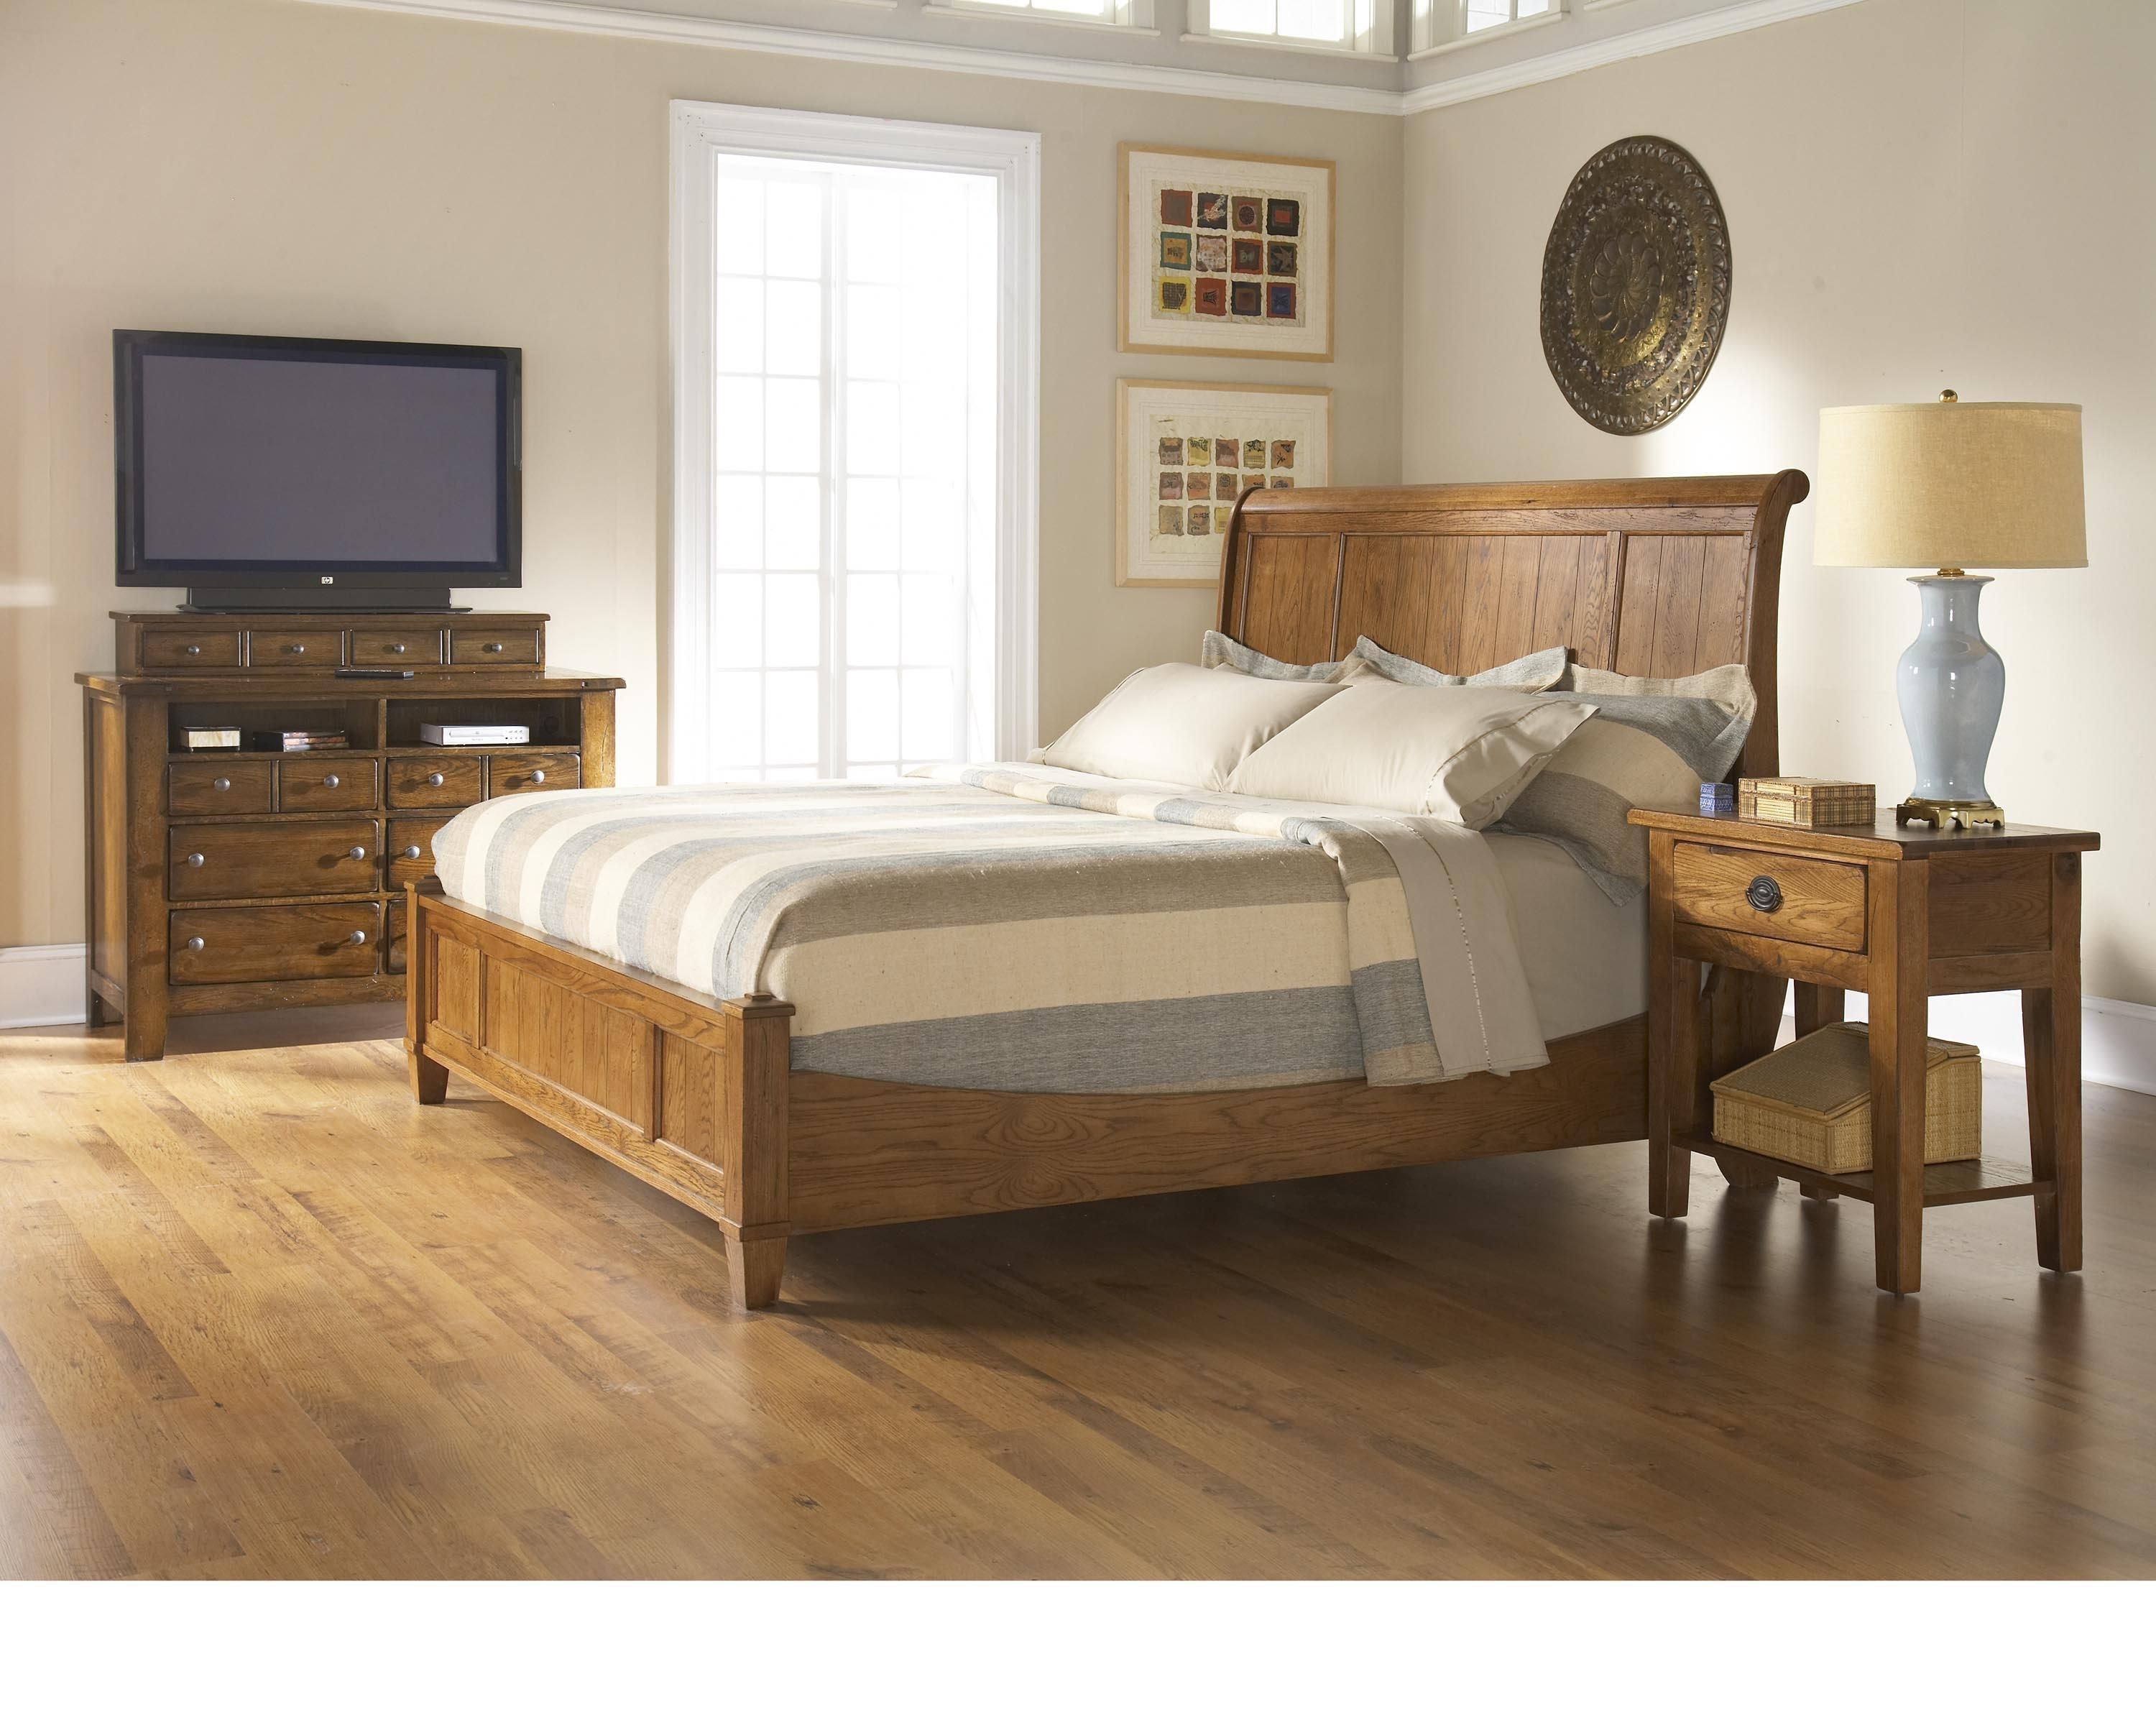 Like The Bed Frame Have Tall In The Bed So Cant Have Food Board But Head Like Sleigh Like It I Do Broyhill Furniture Master Bedroom Set Bedroom Sets